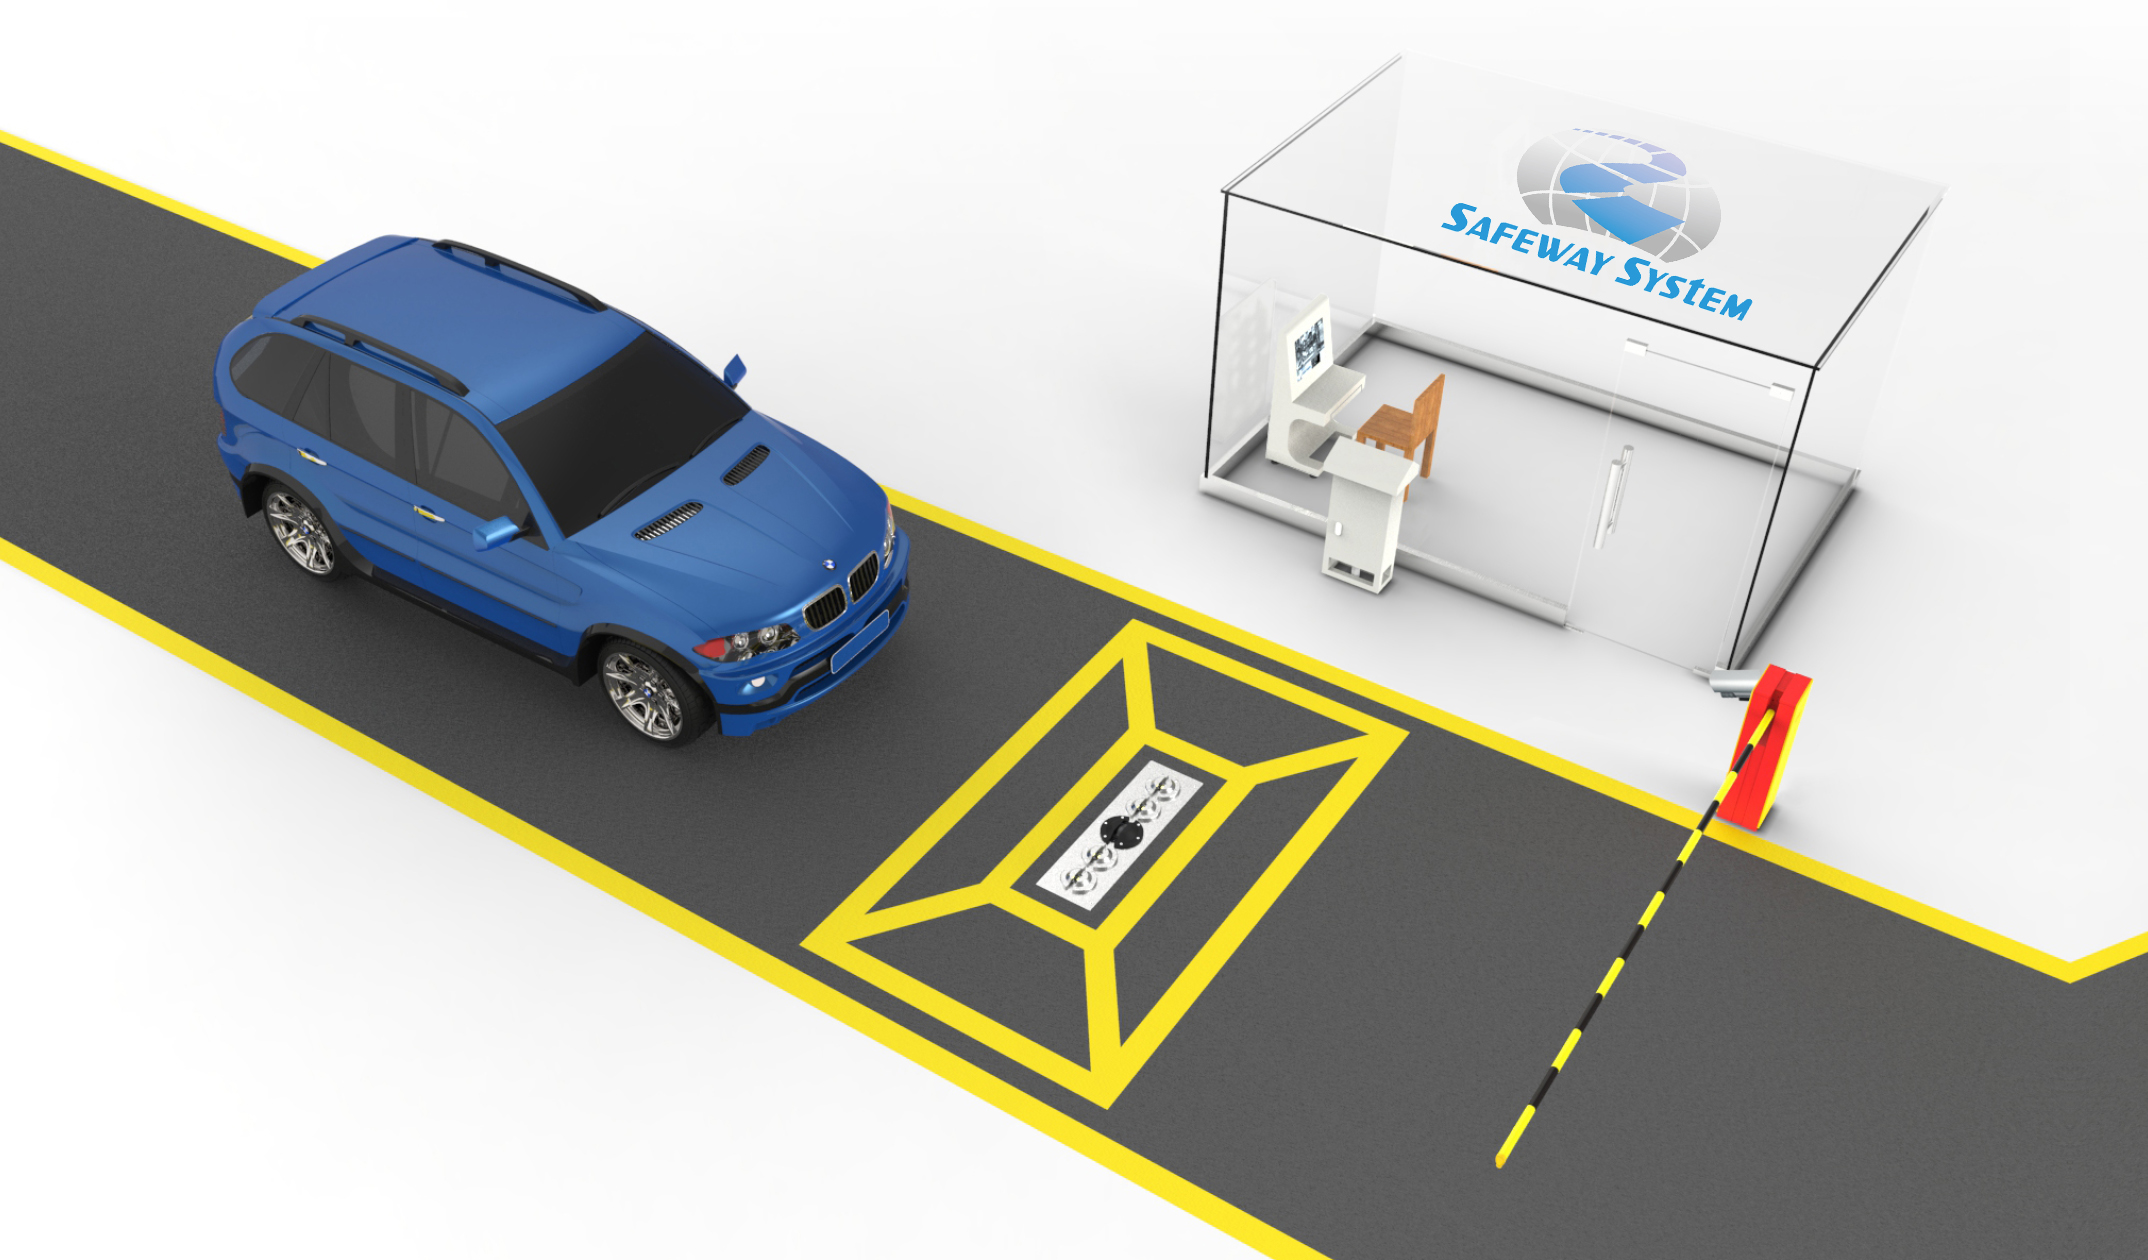 Under Vehicle Surveillance System - Fixed At3300